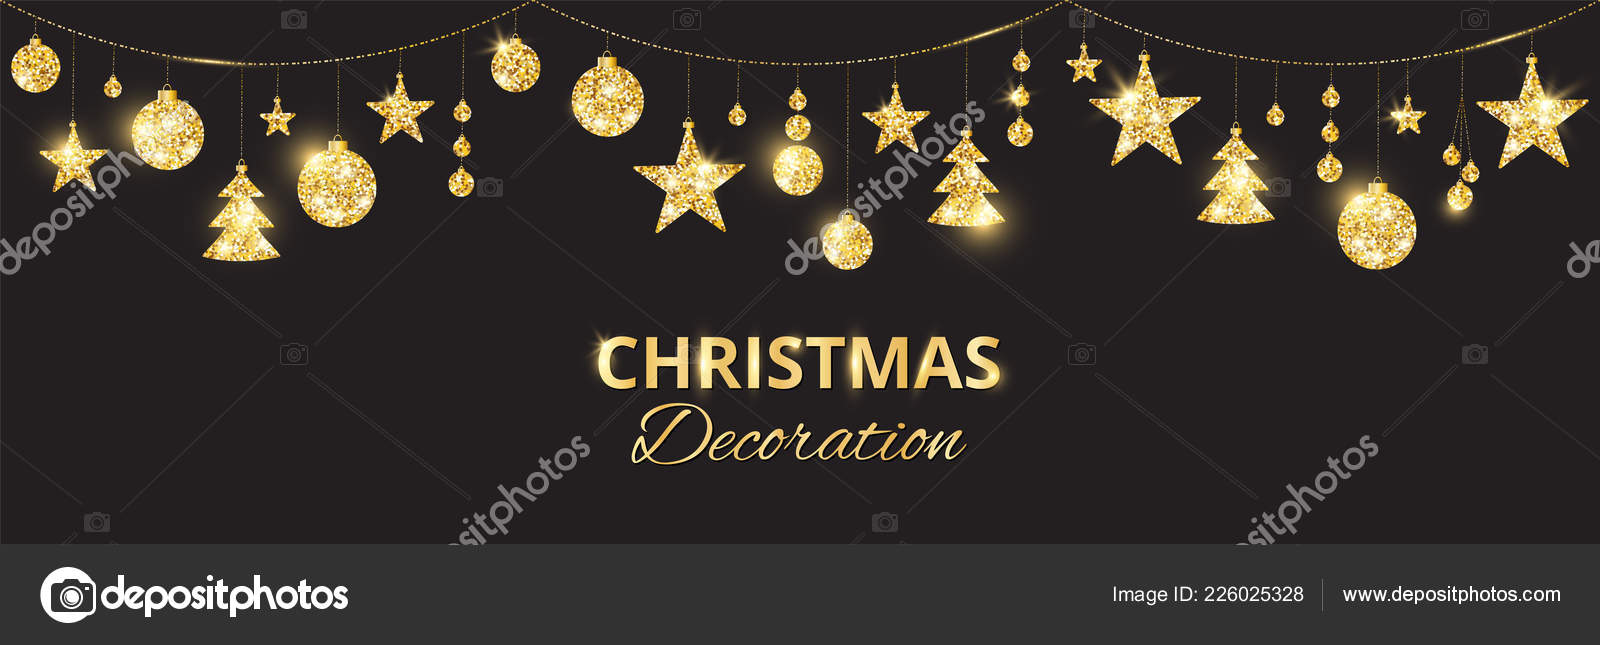 christmas golden decoration on black background hanging glitter balls trees stars holiday vector frame for party posters headers banners